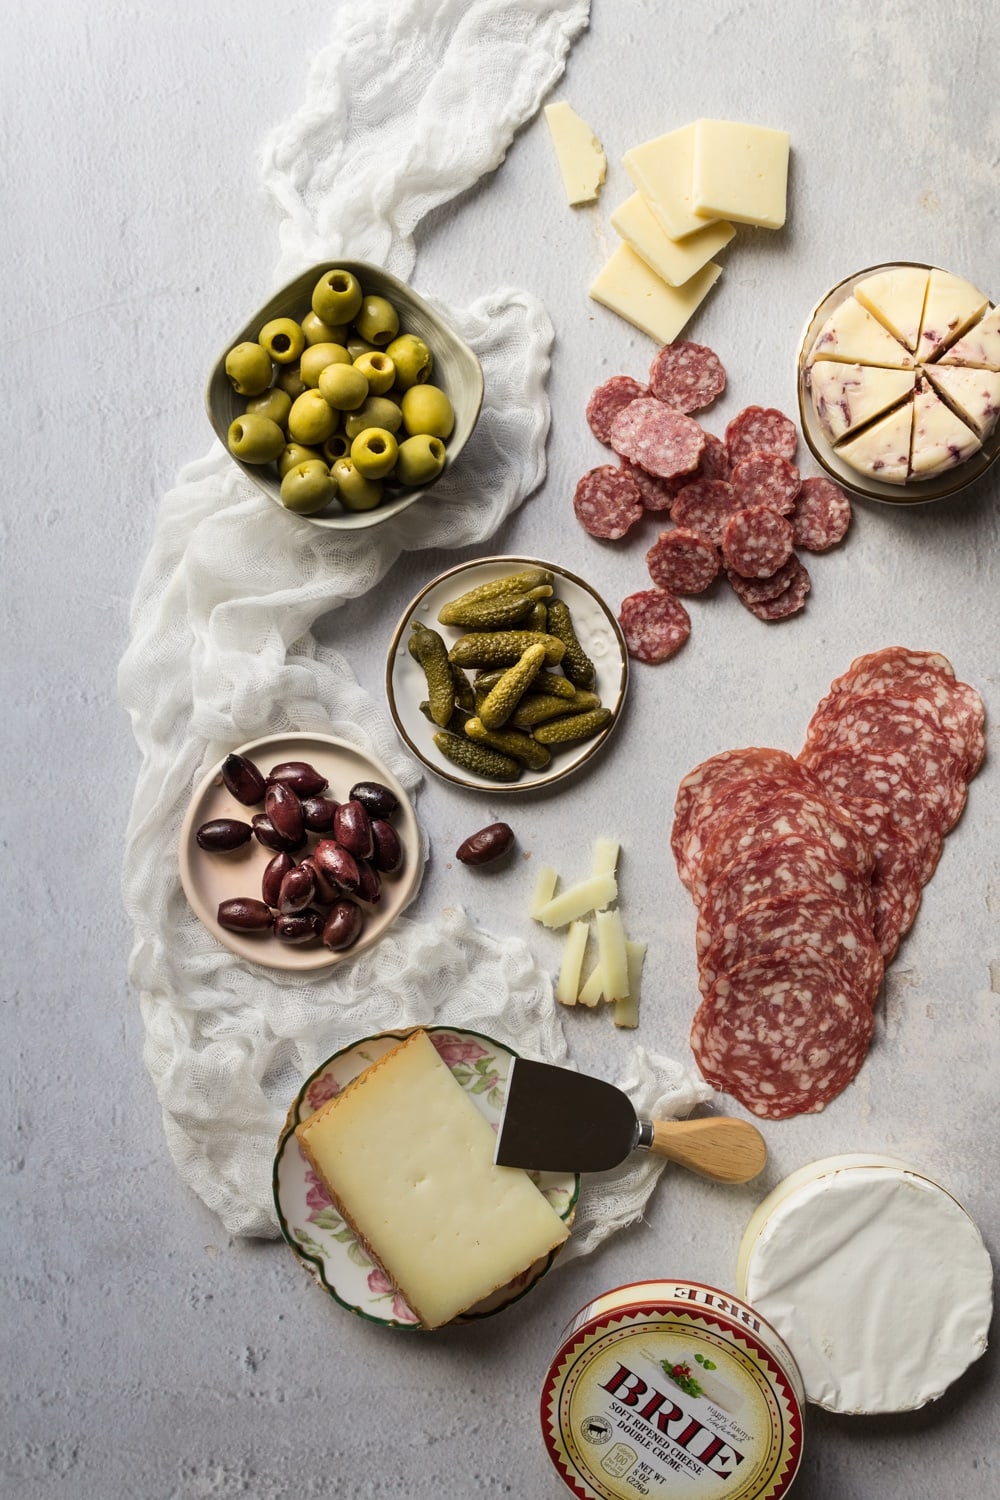 Olives, meats, and cheeses for a charcuterie board